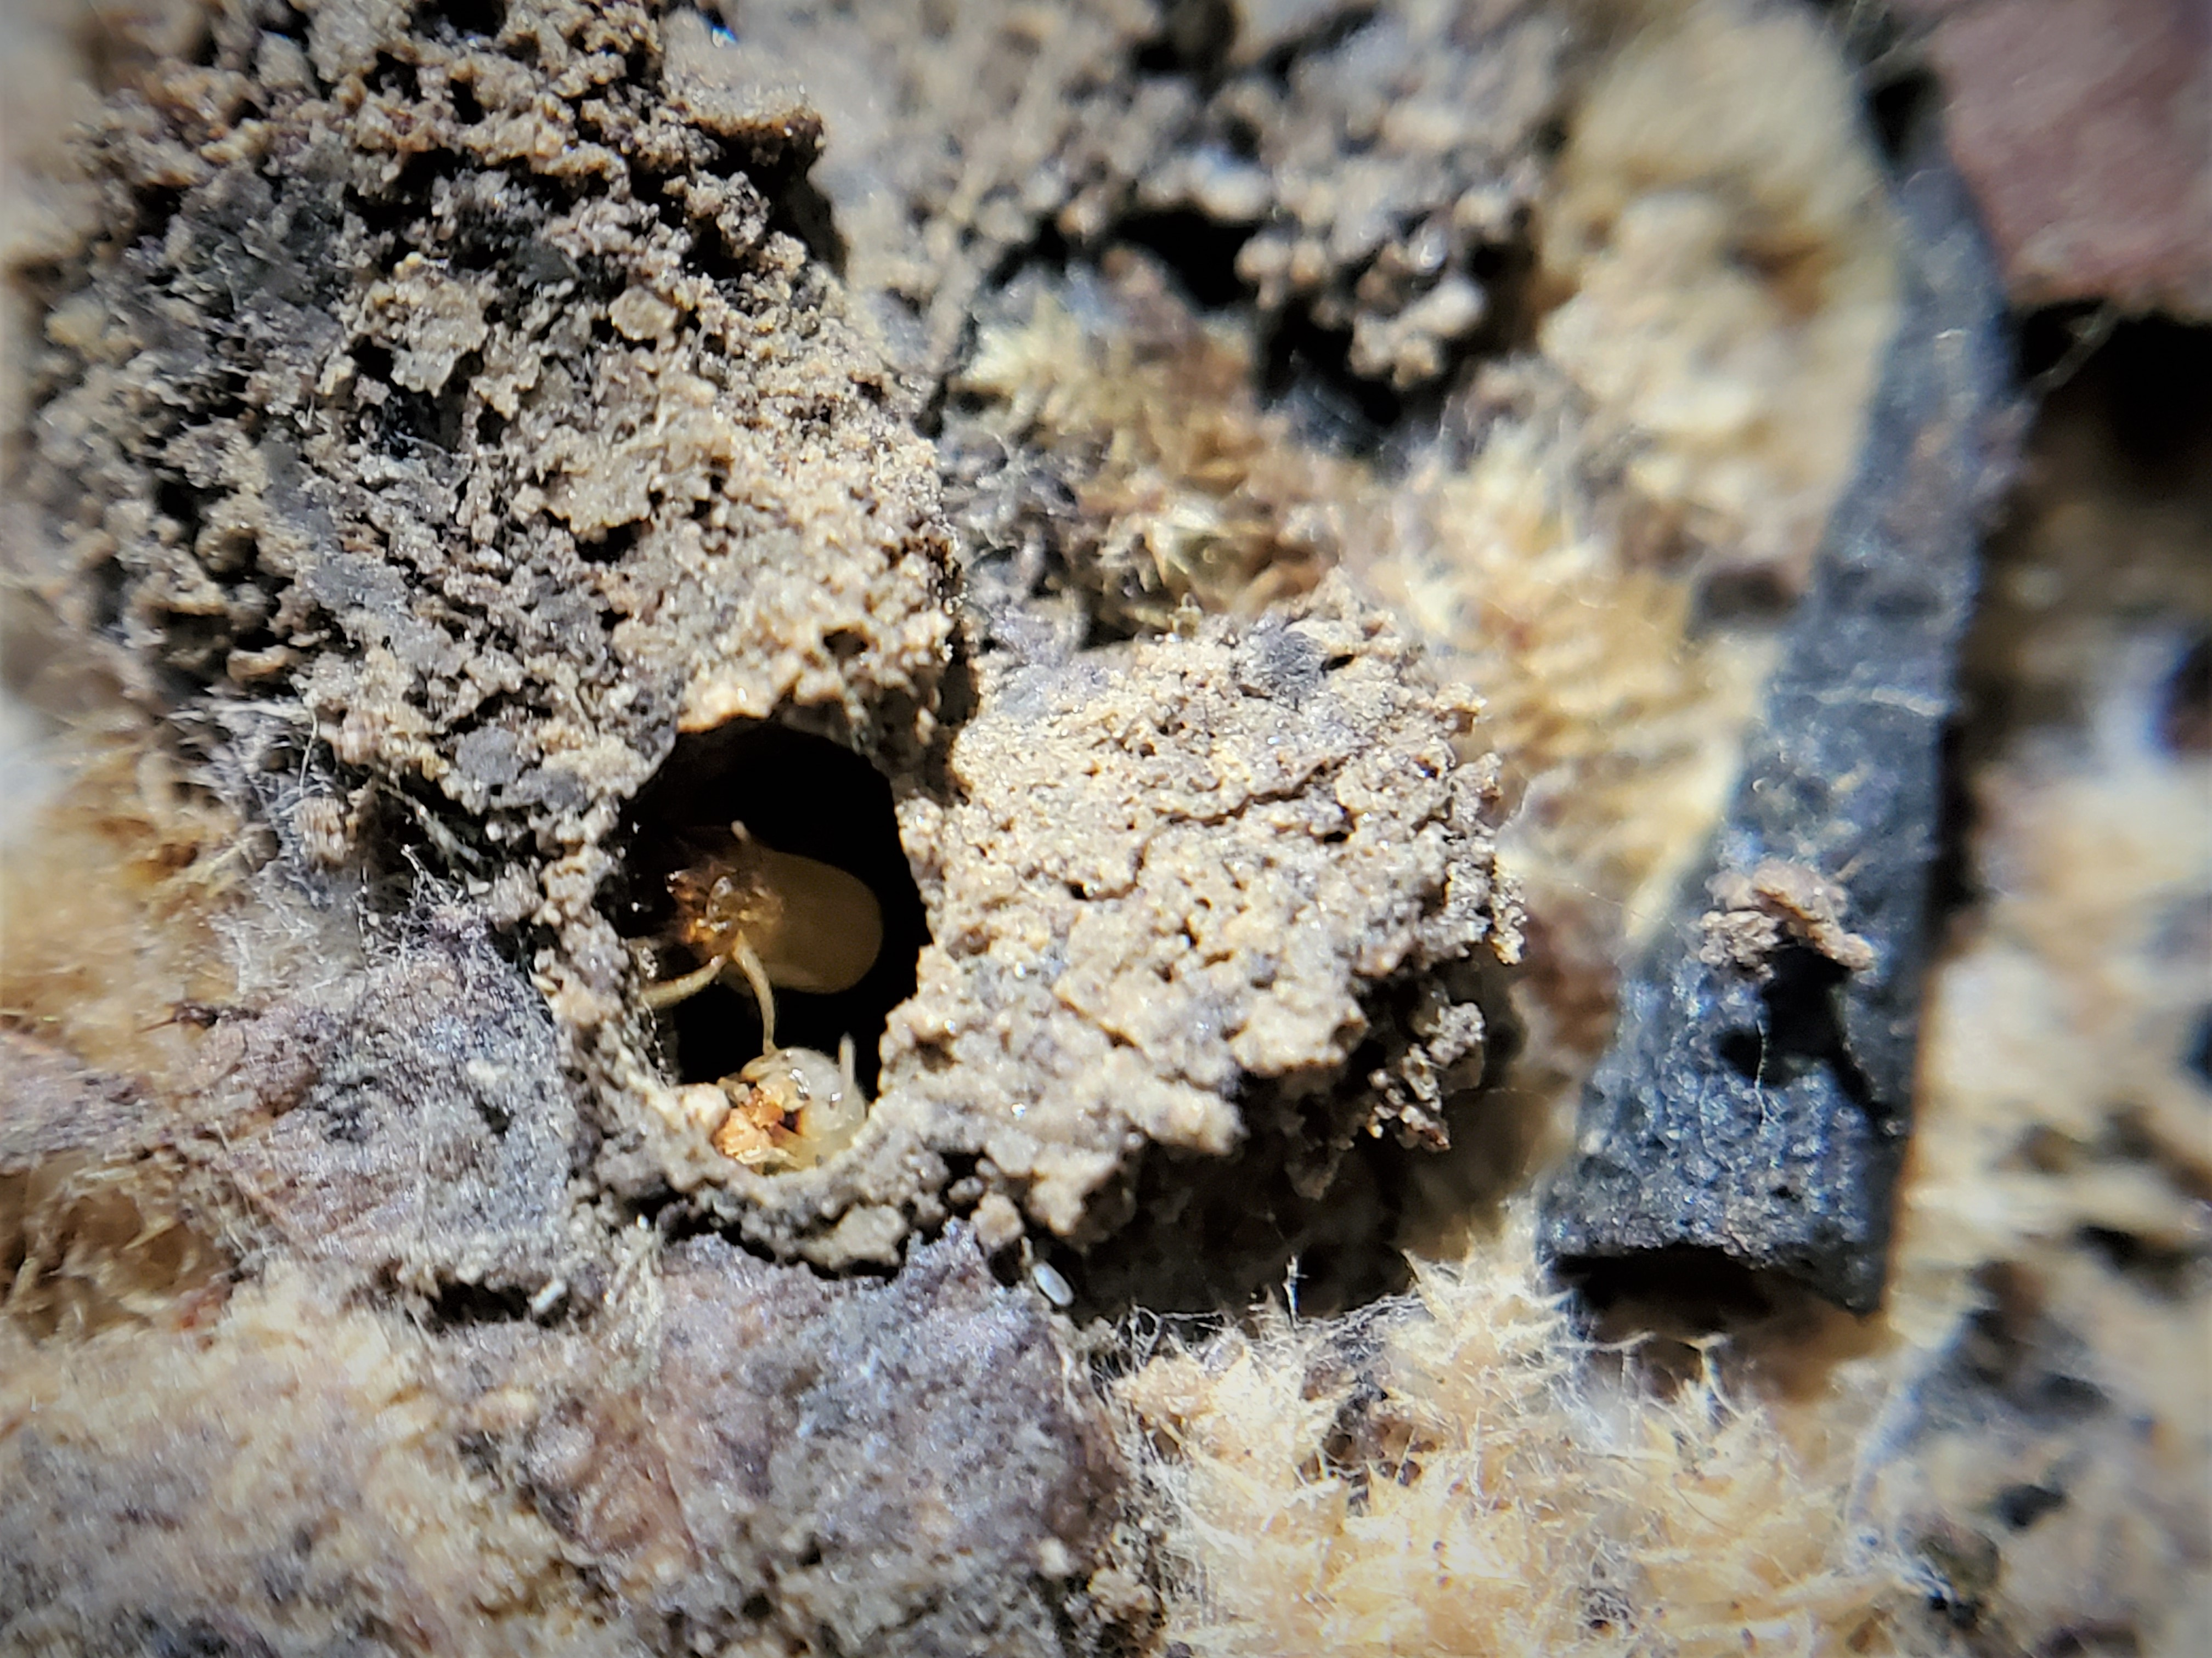 Two termites can be seen looking out from a small hole in a rotten log.